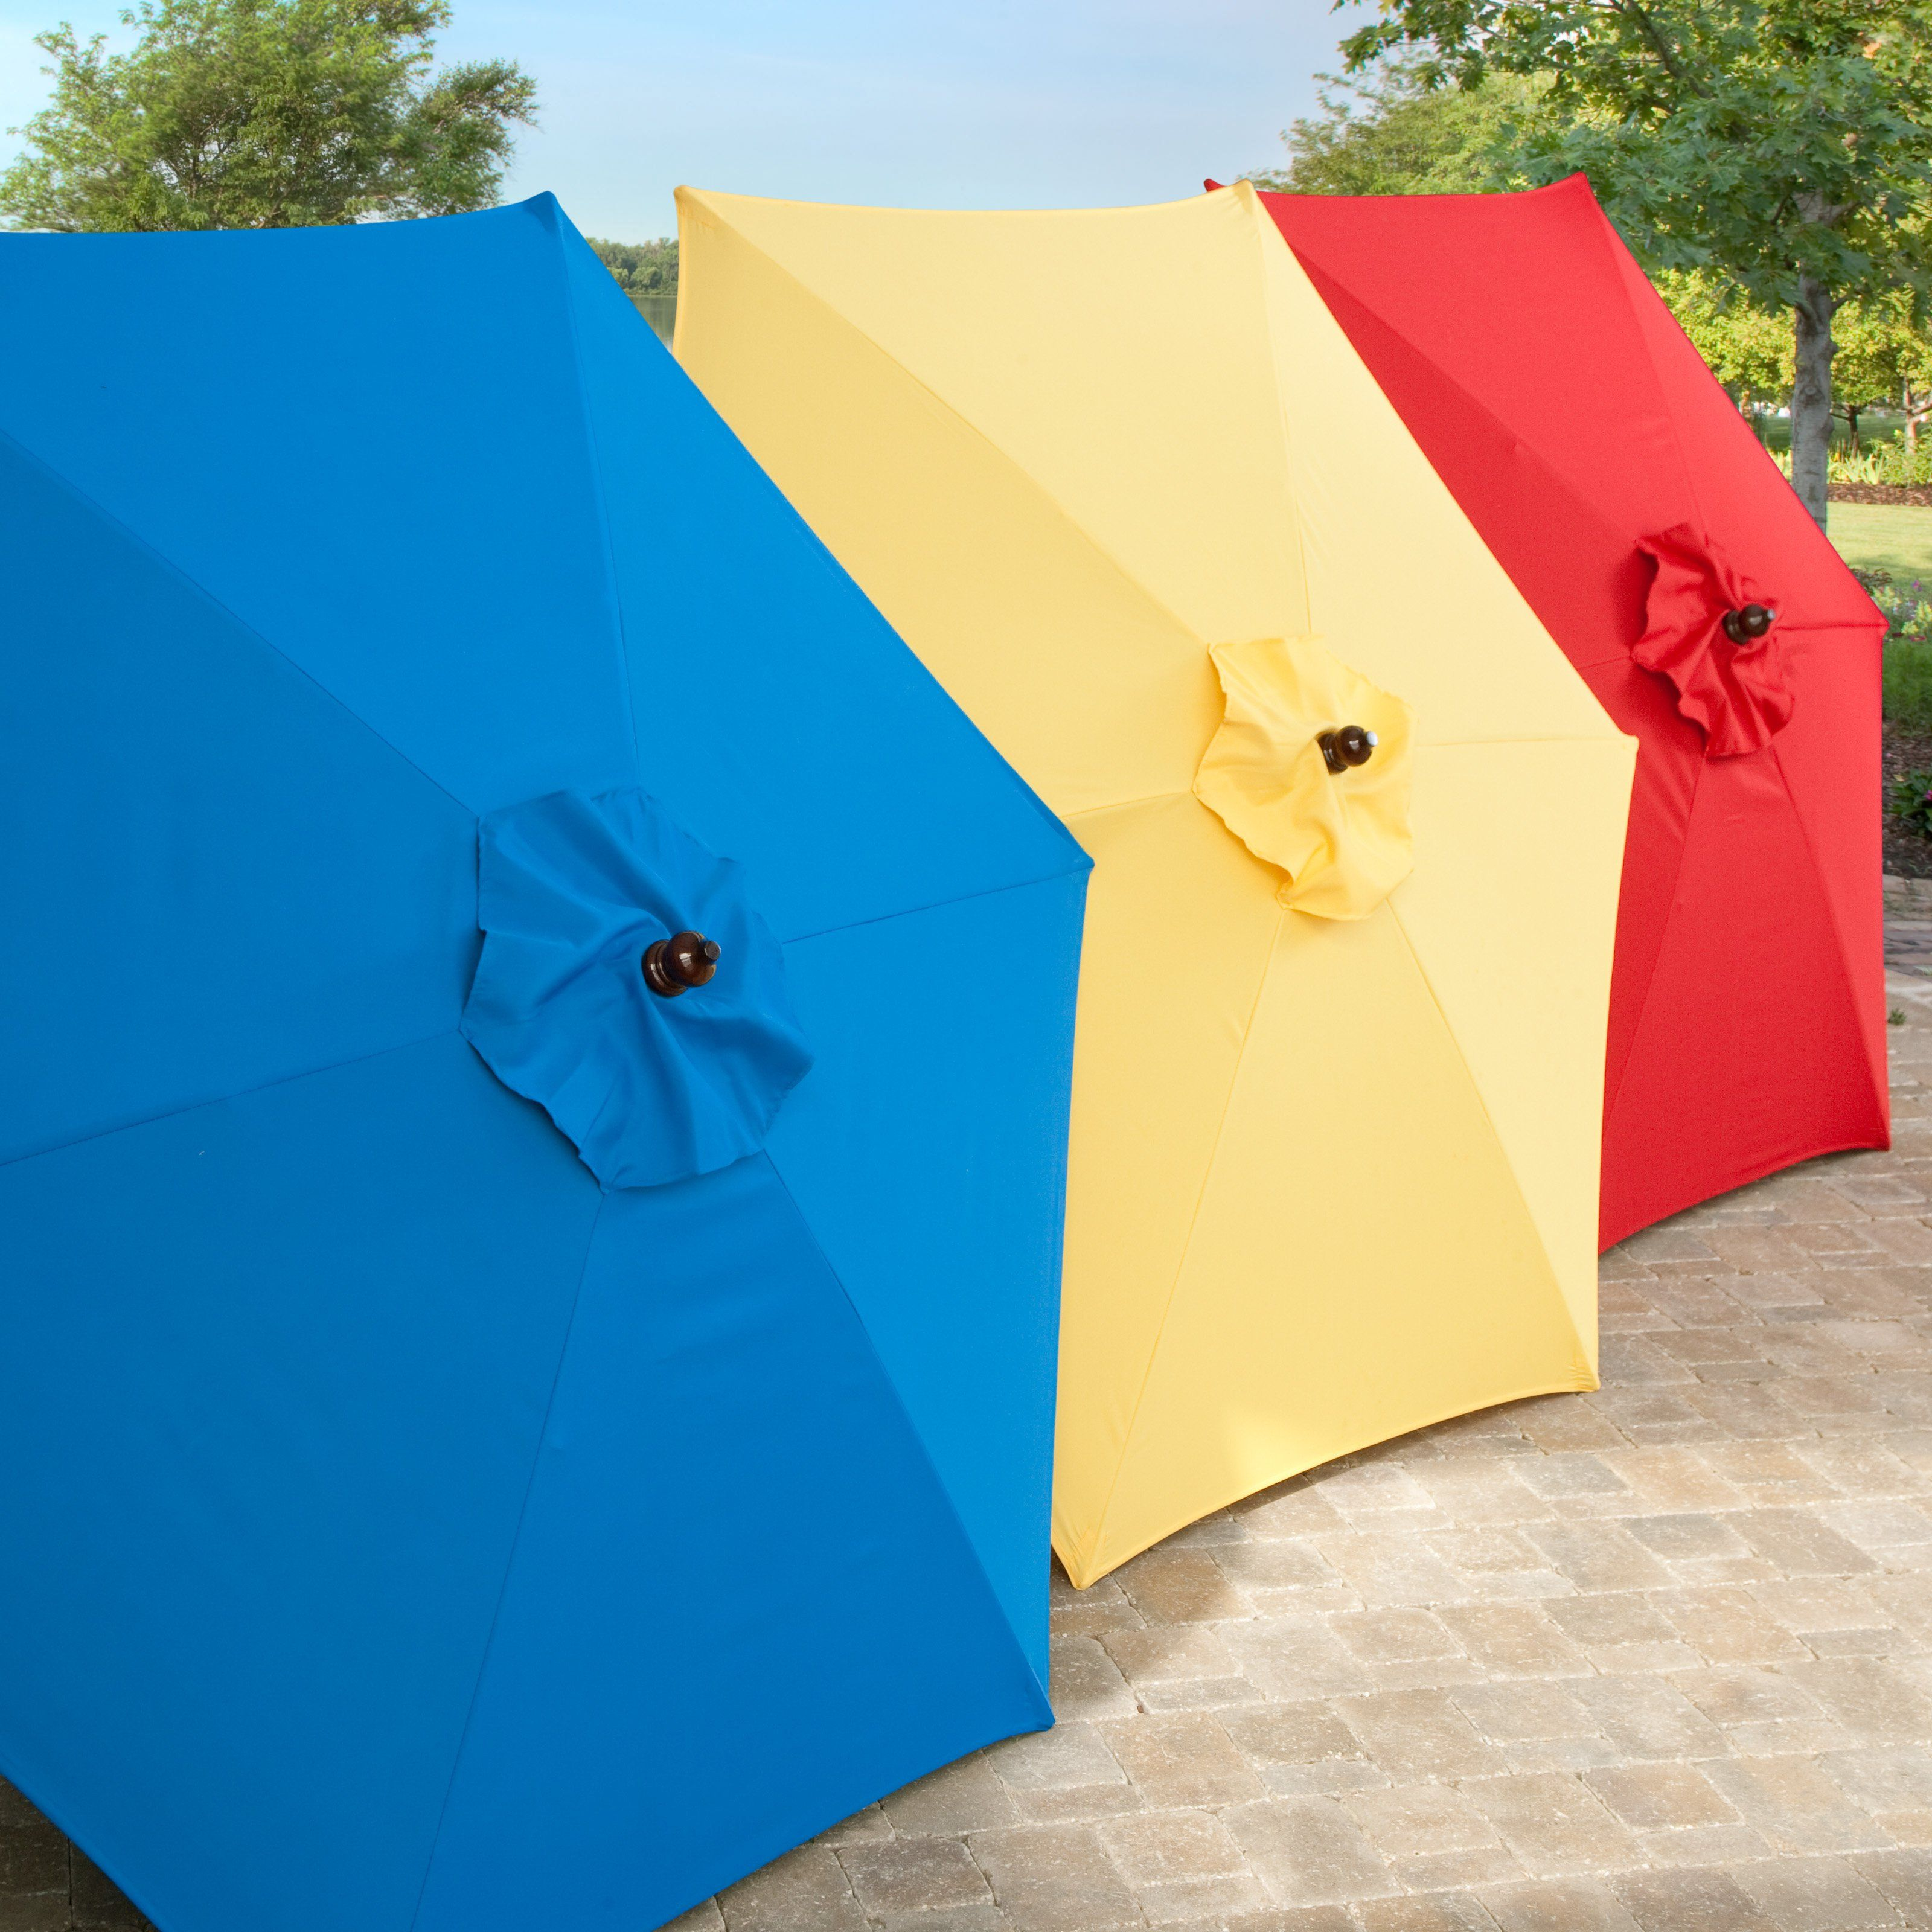 find great umbrellas such as clamp on red and white umbrella at